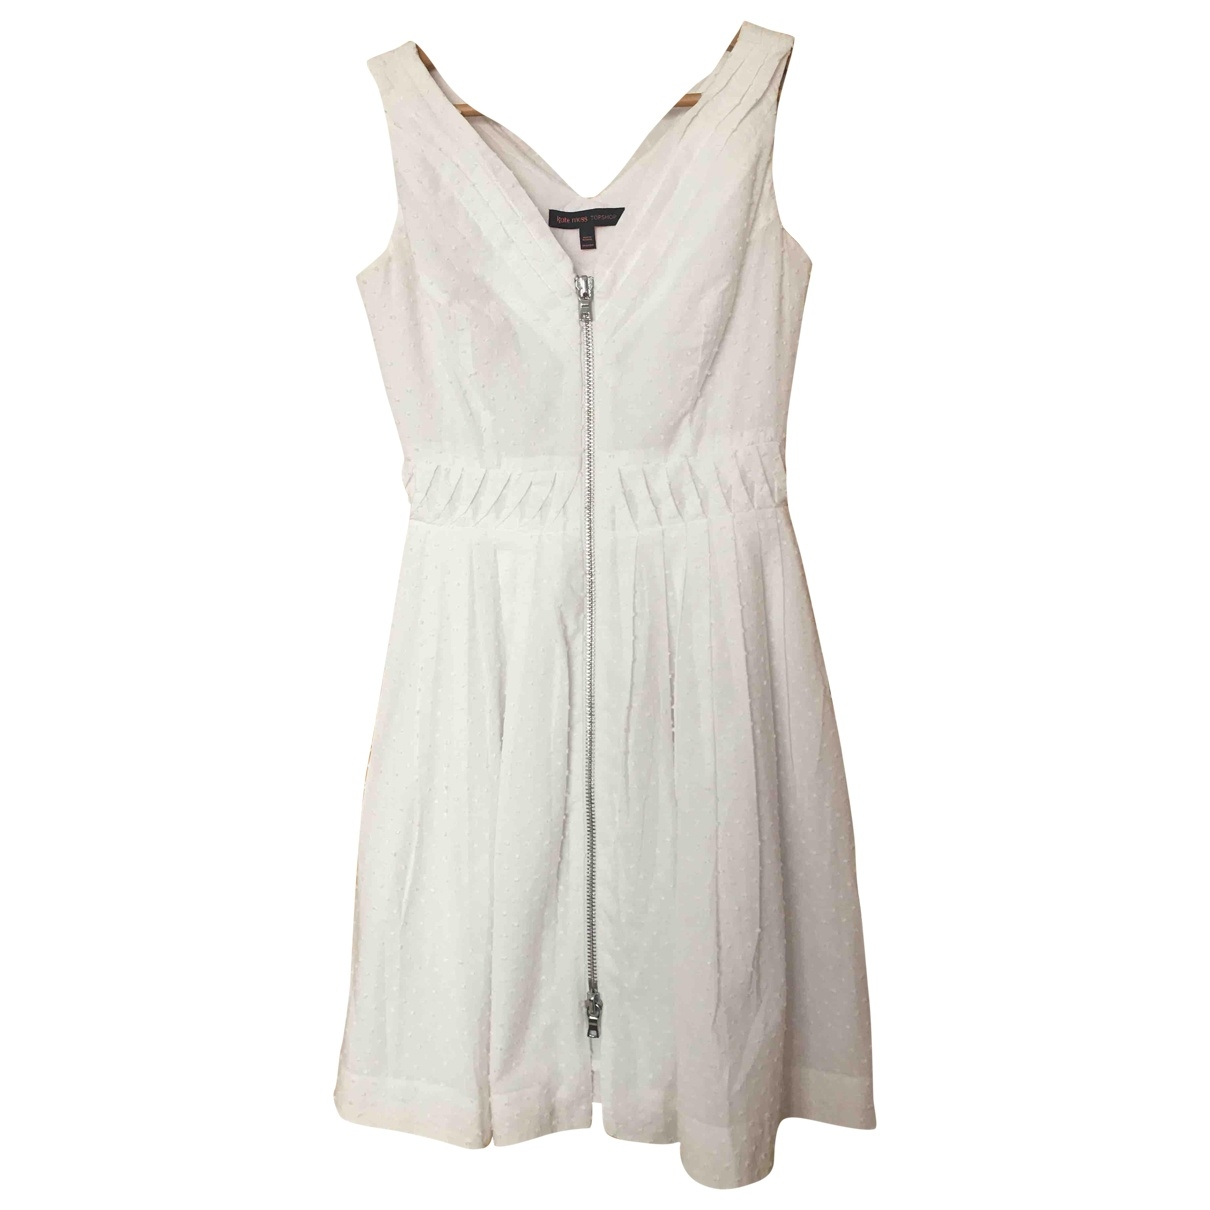 tophop \N White Cotton dress for Women 8 UK